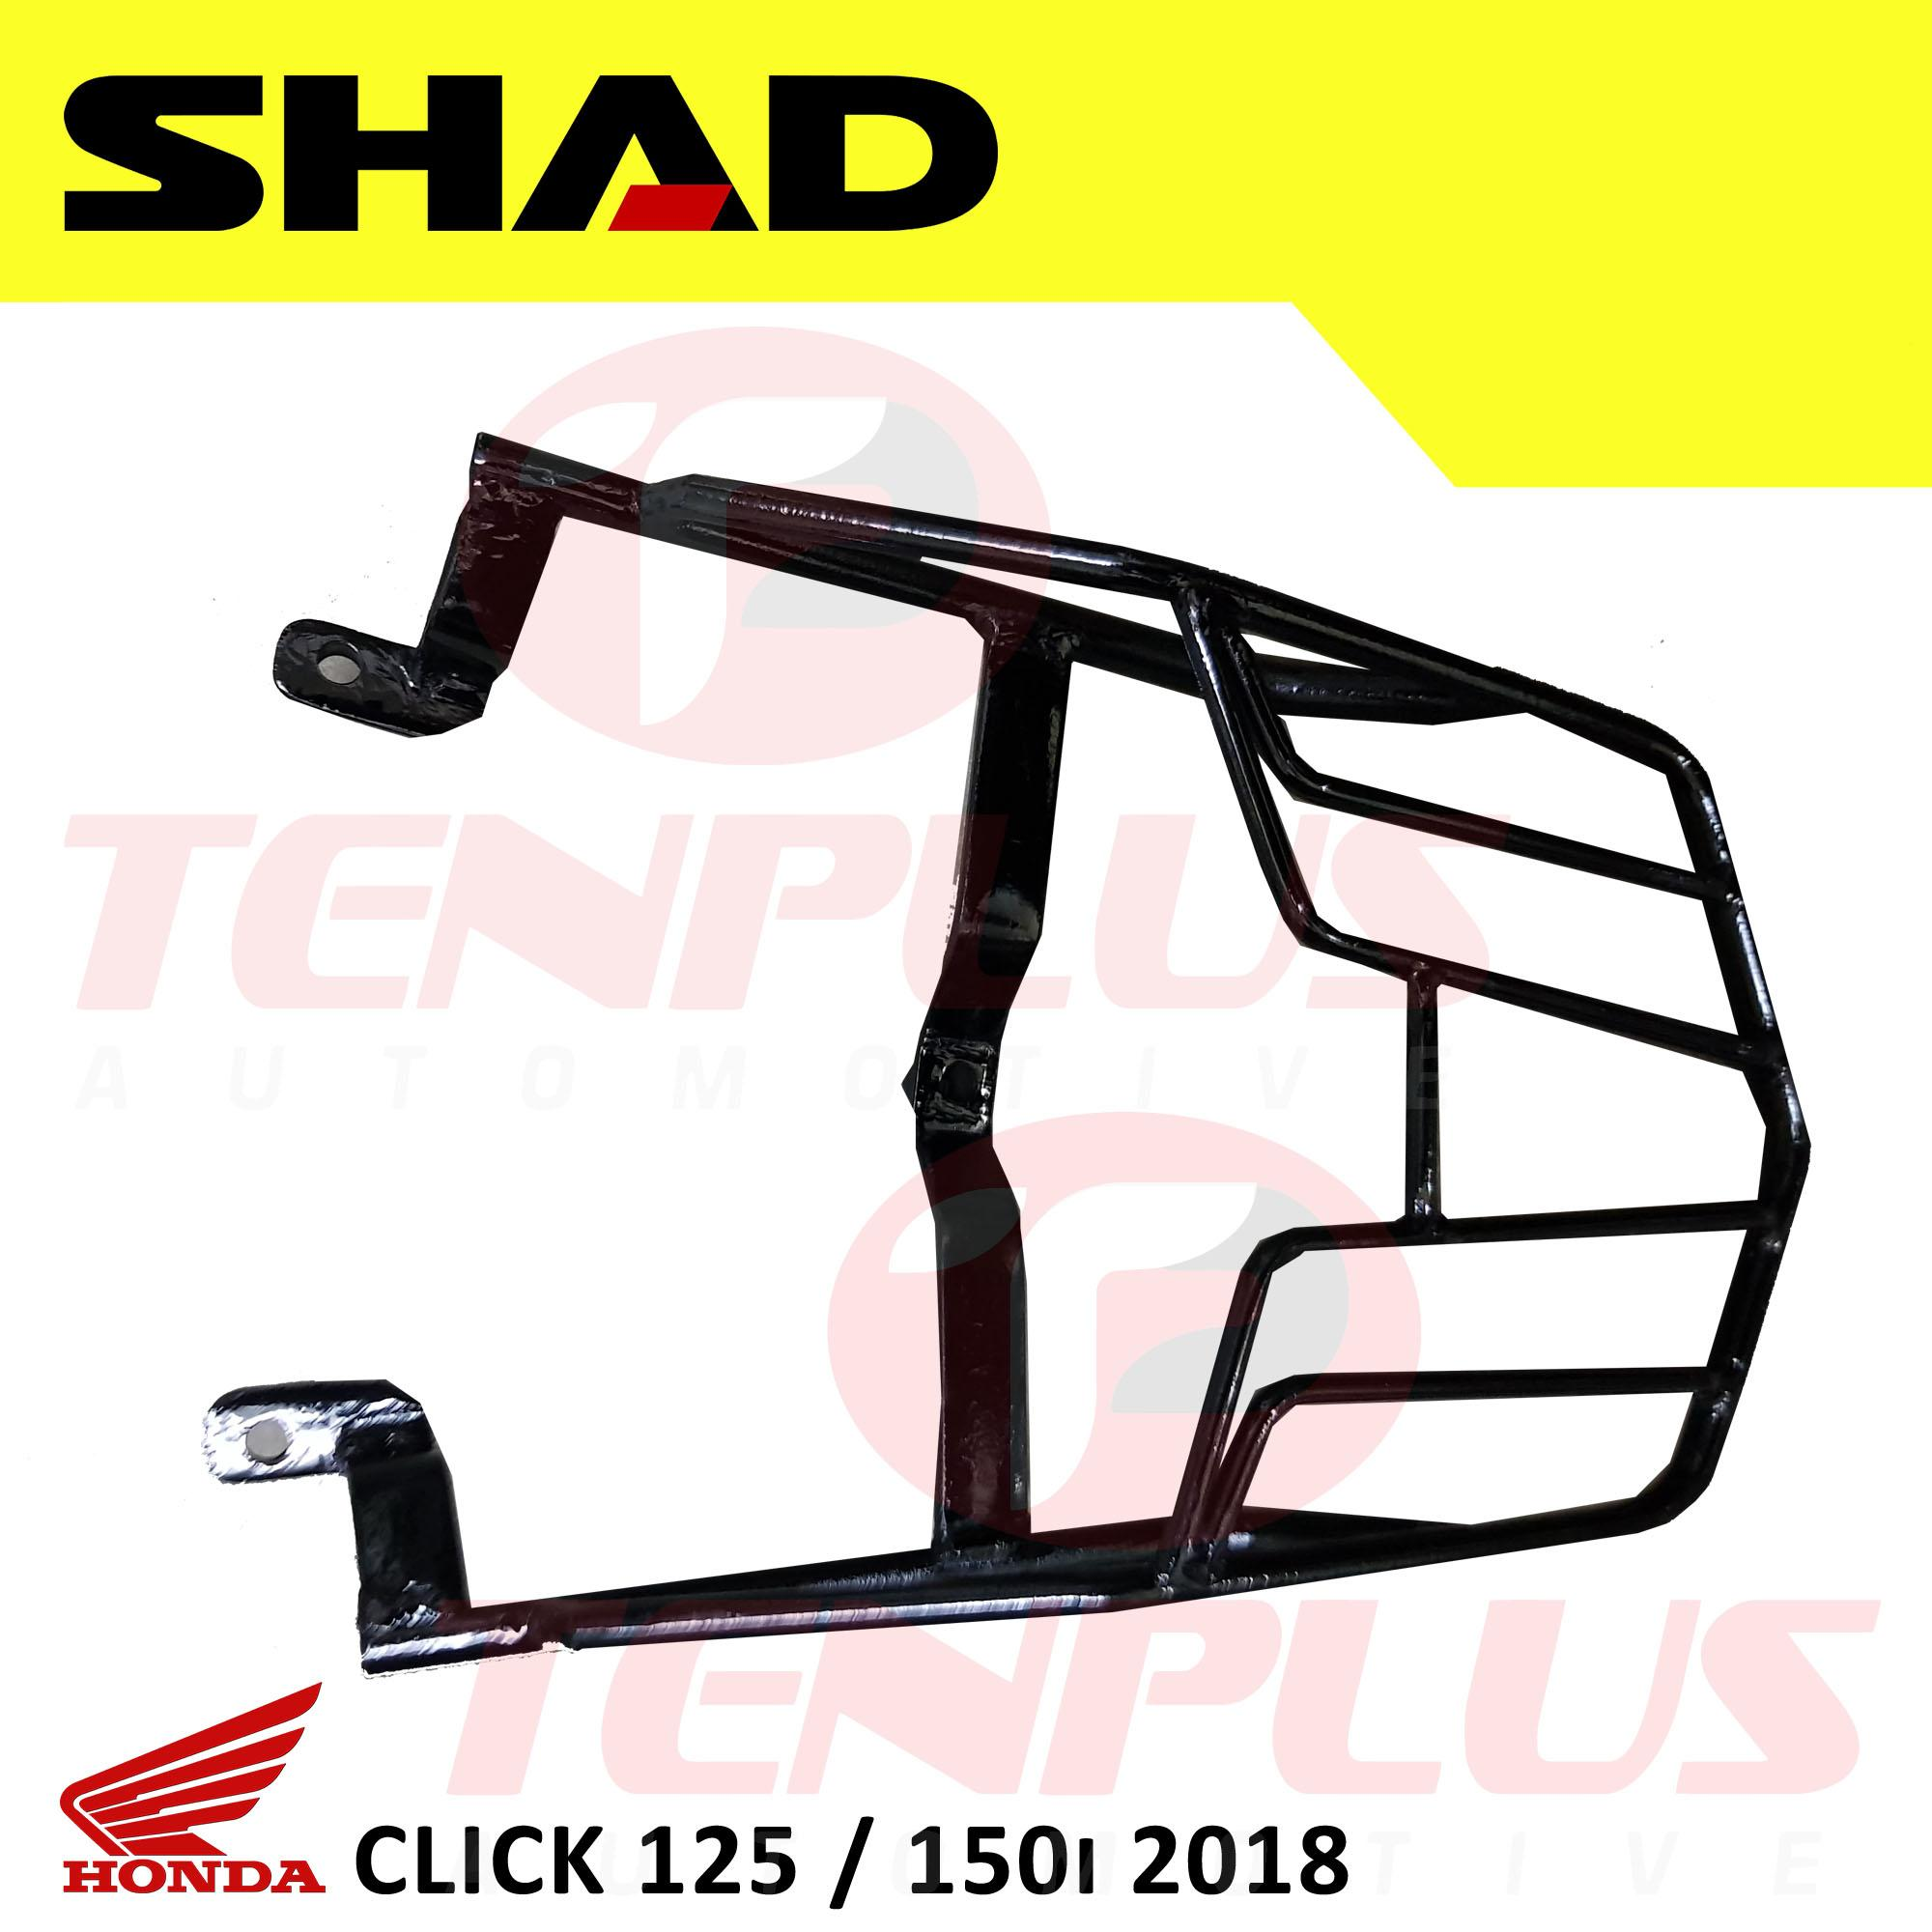 7c697480 Shad Philippines: Shad price list - Motor Accessories for sale | Lazada